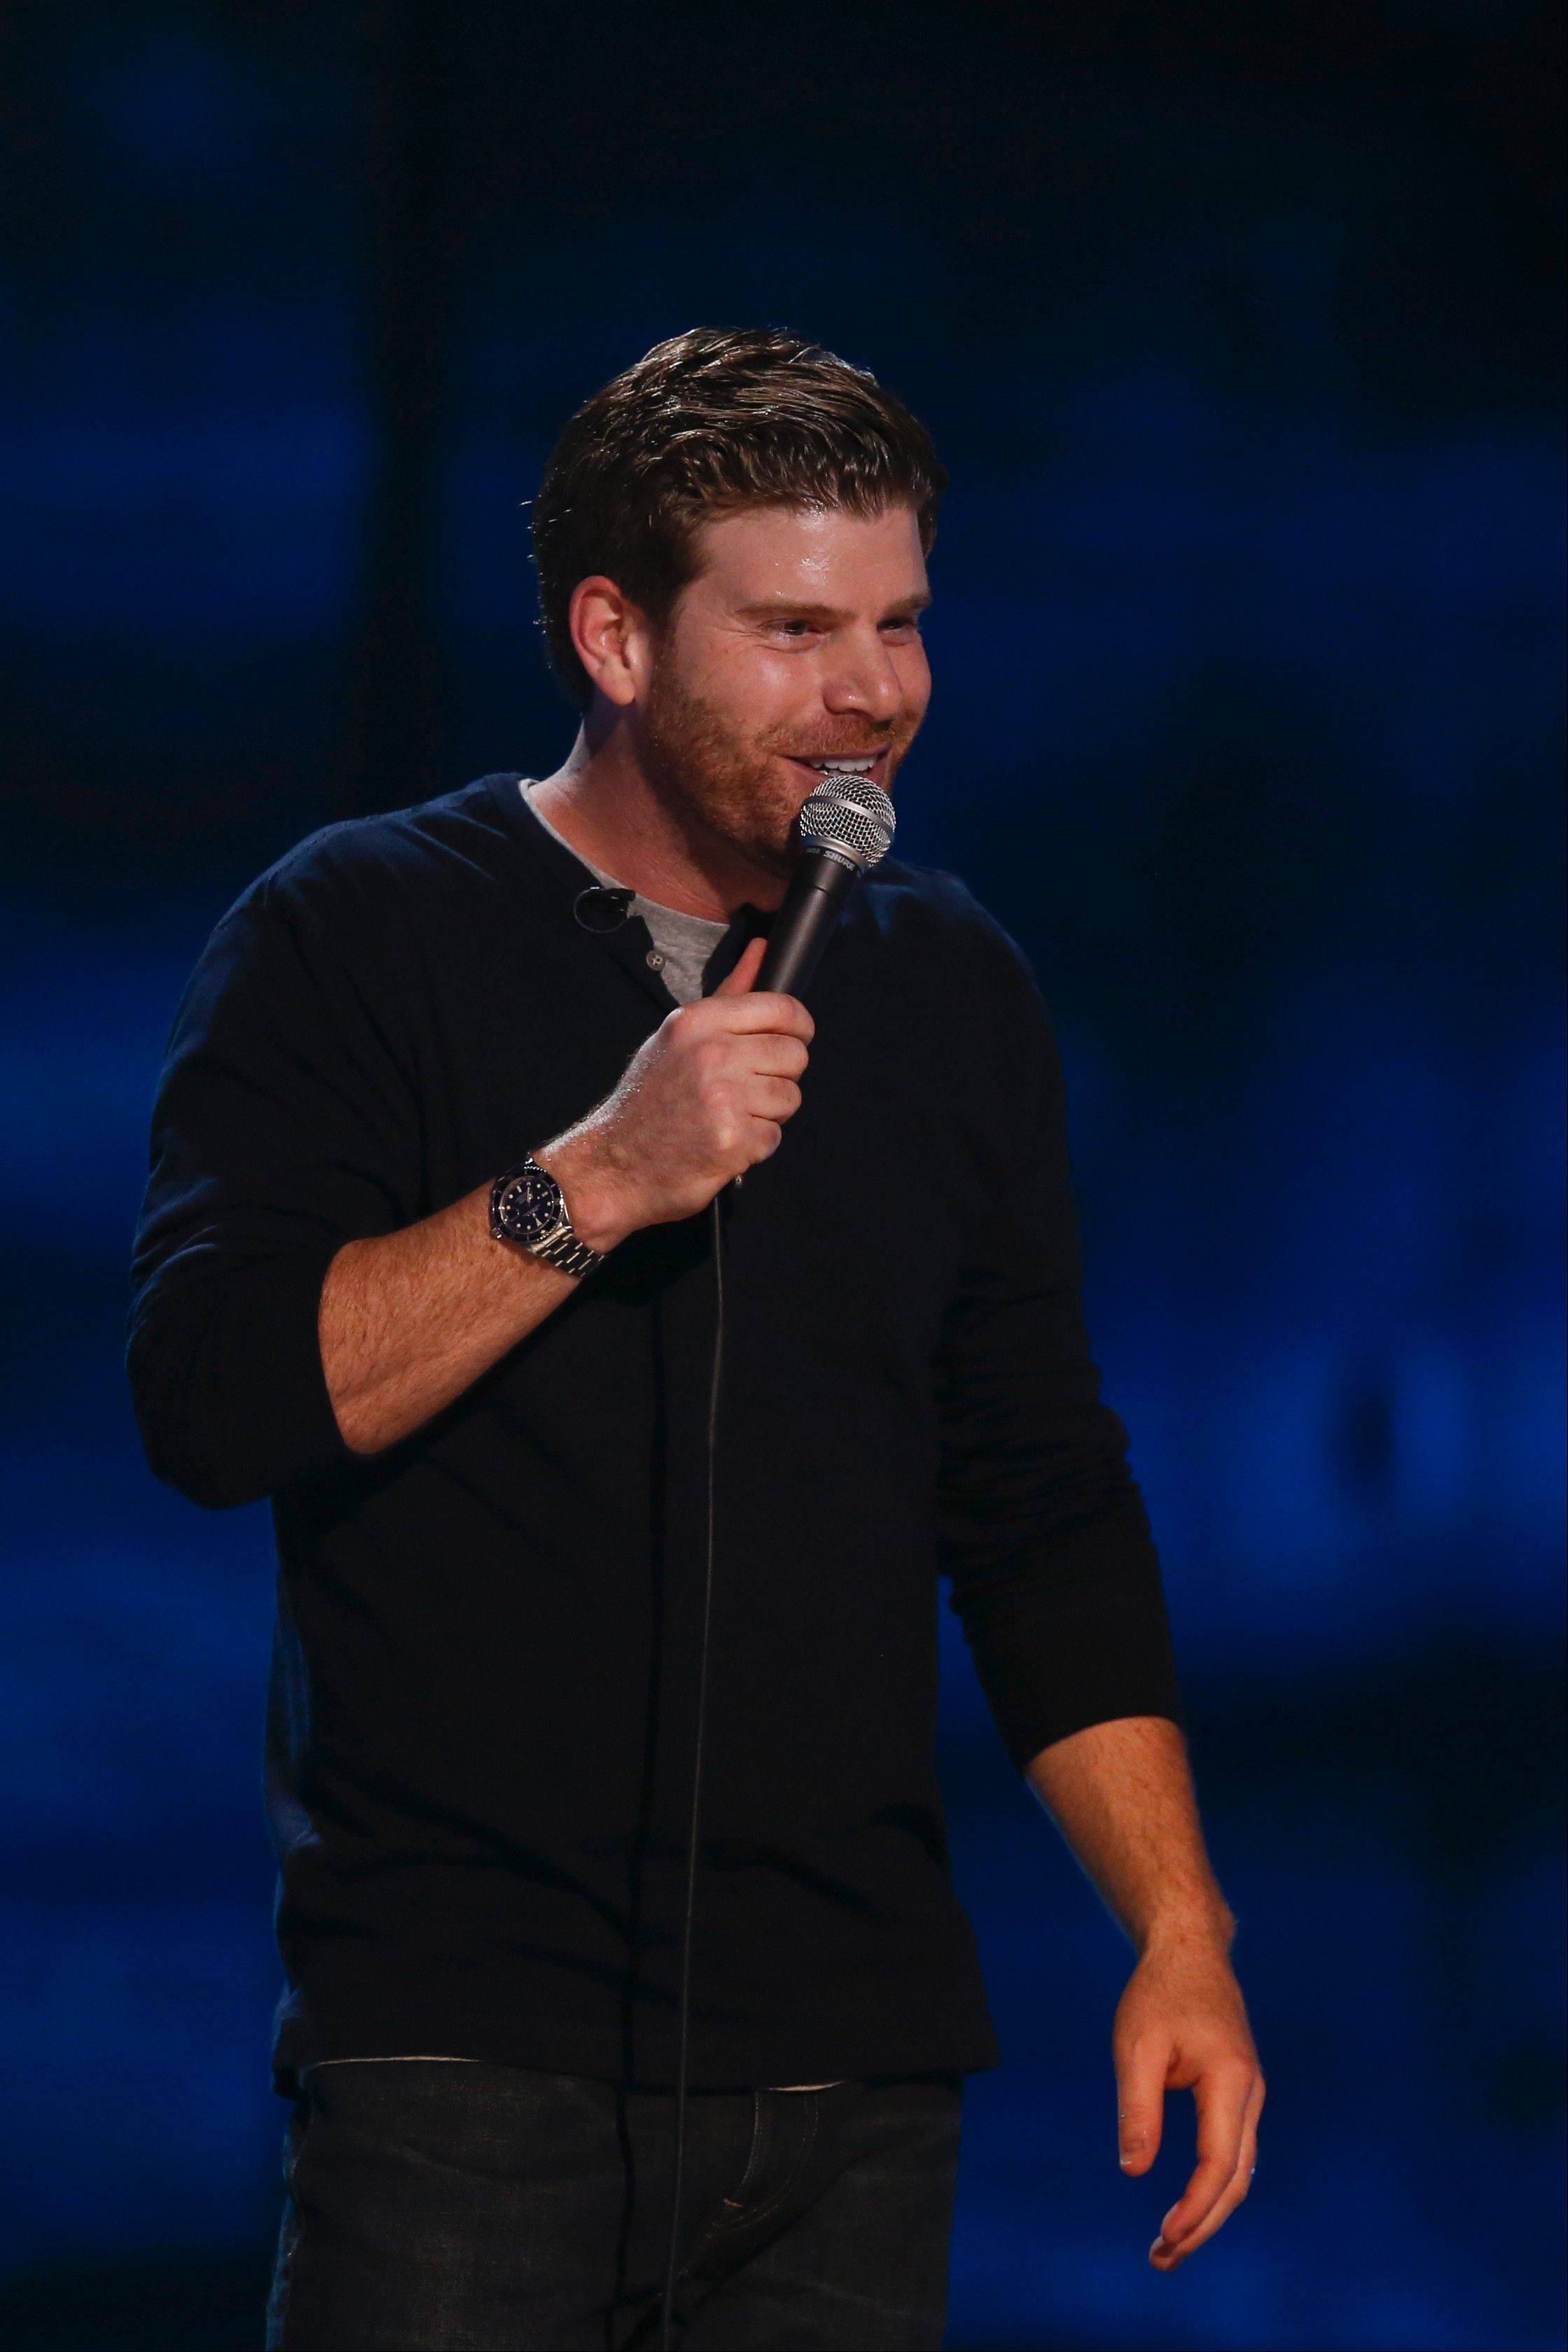 Comedian Steve Rannazzisi is set to perform at Zanies in Chicago and Rosemont.